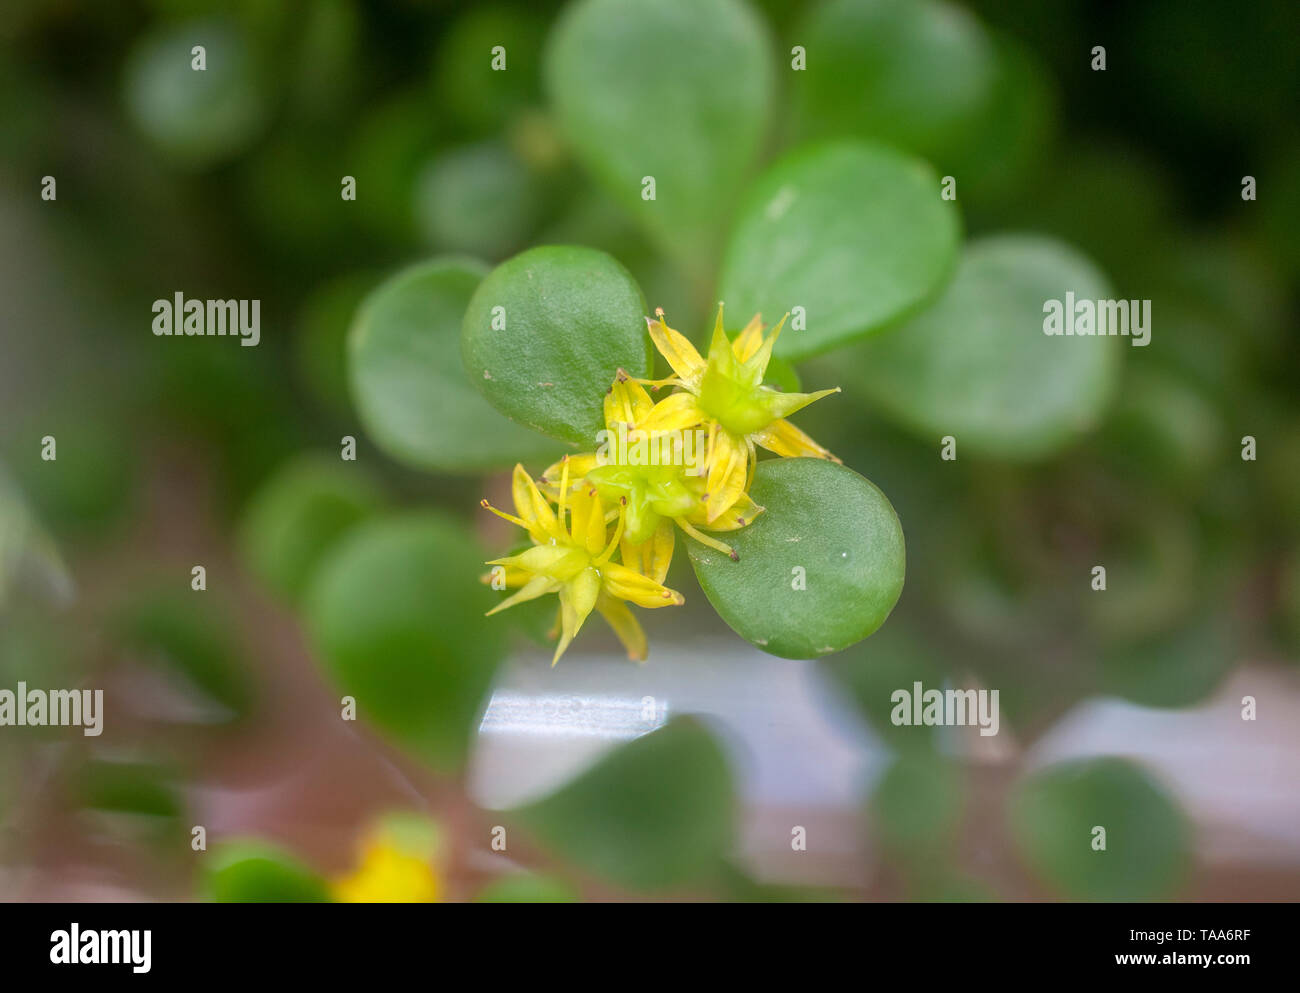 Golden Japanese Stonecrop (Sedum makinoi ogon) flowers and foliage. This is a tiny-leaved, spreading, ground cover Sedum that is noted for its bright  Stock Photo